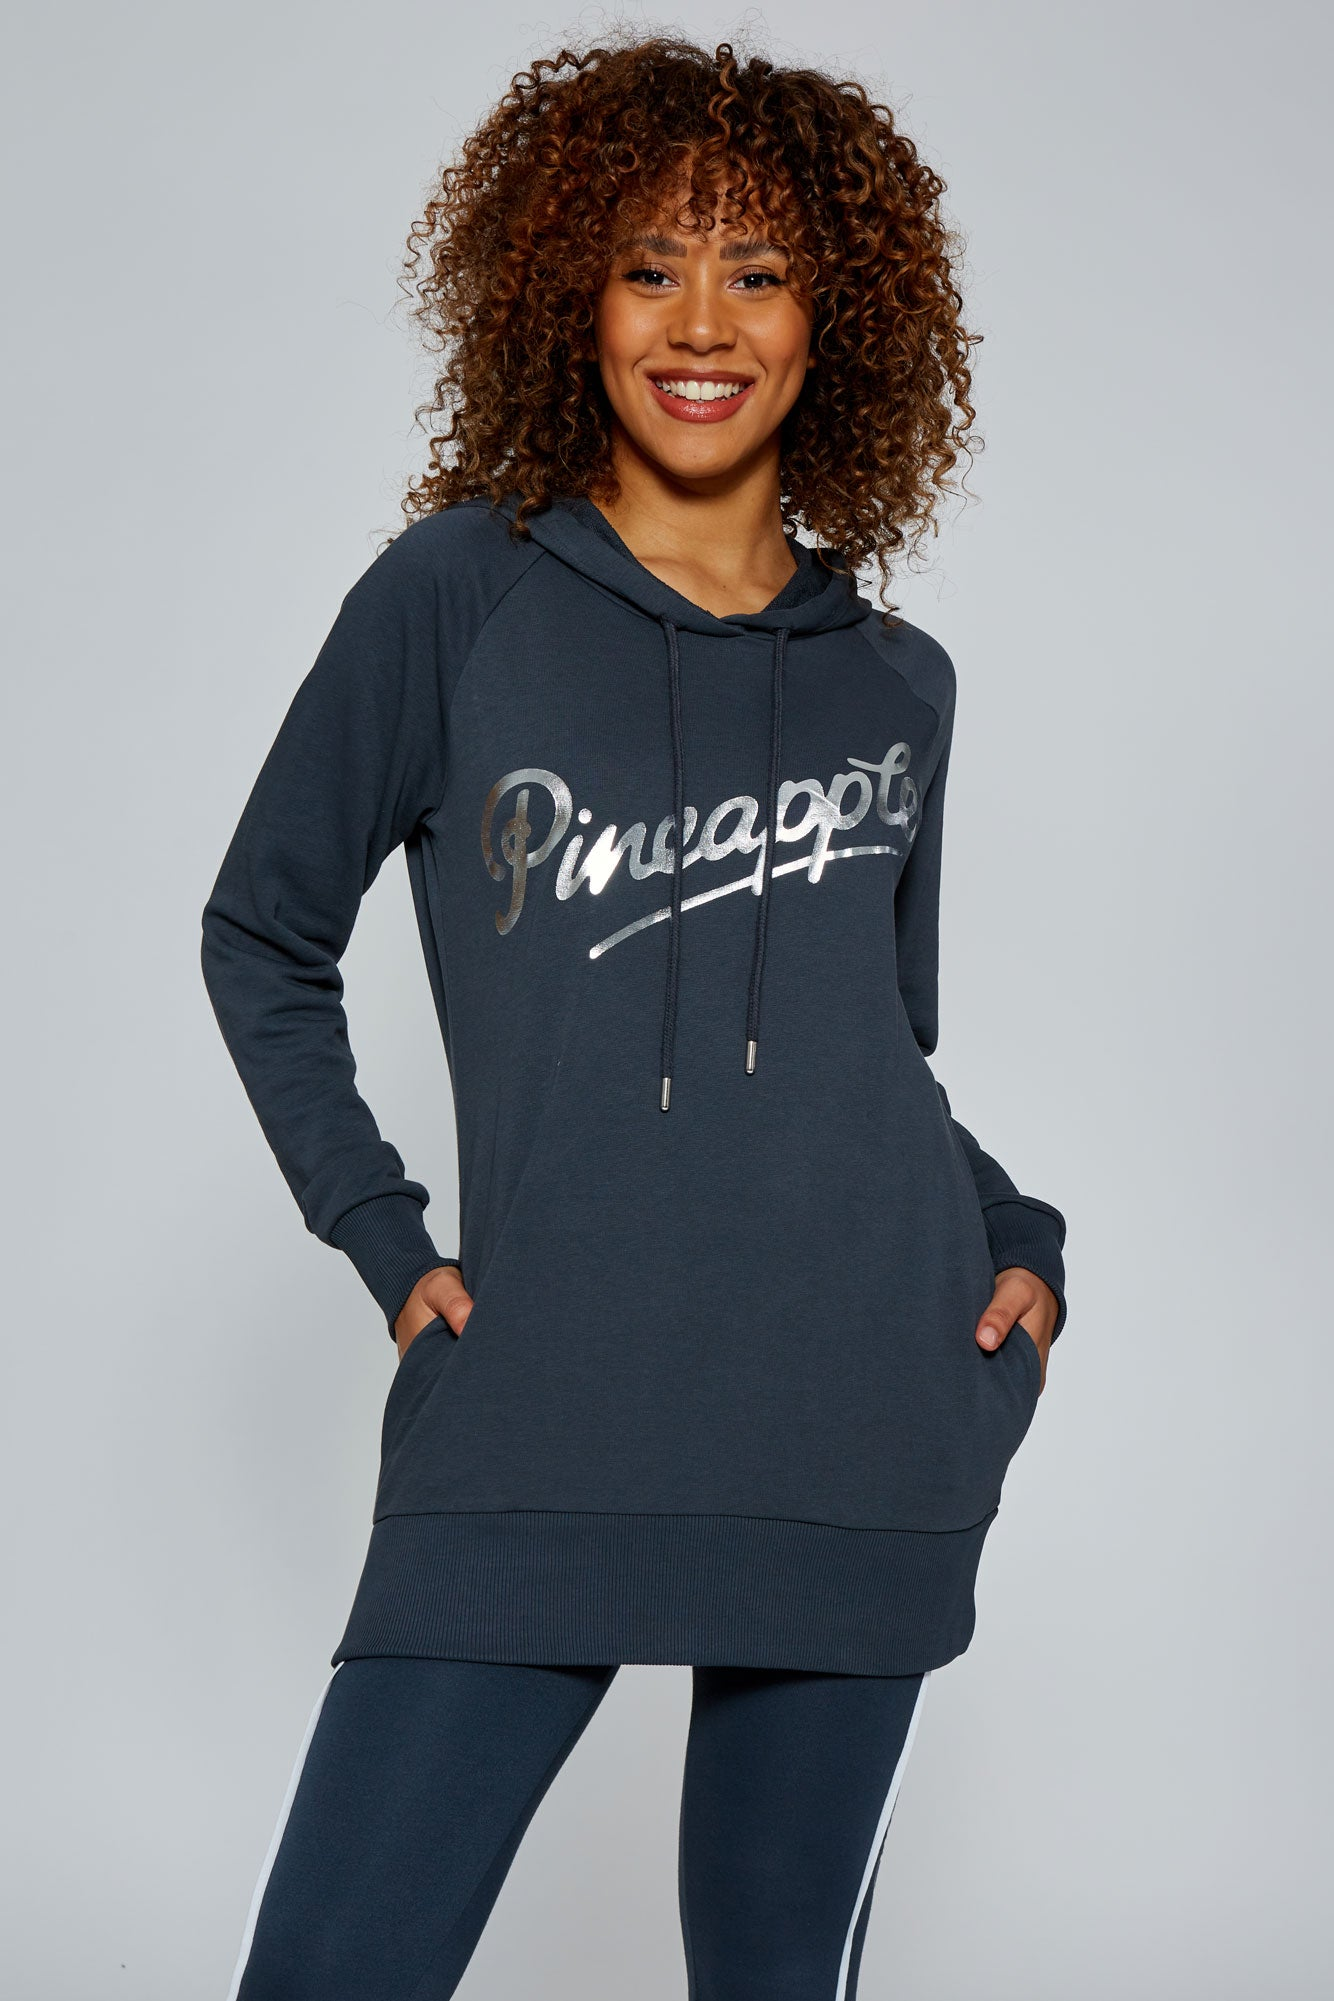 Pineapple Women's Charcoal Retro Hoodie  TH15810A6